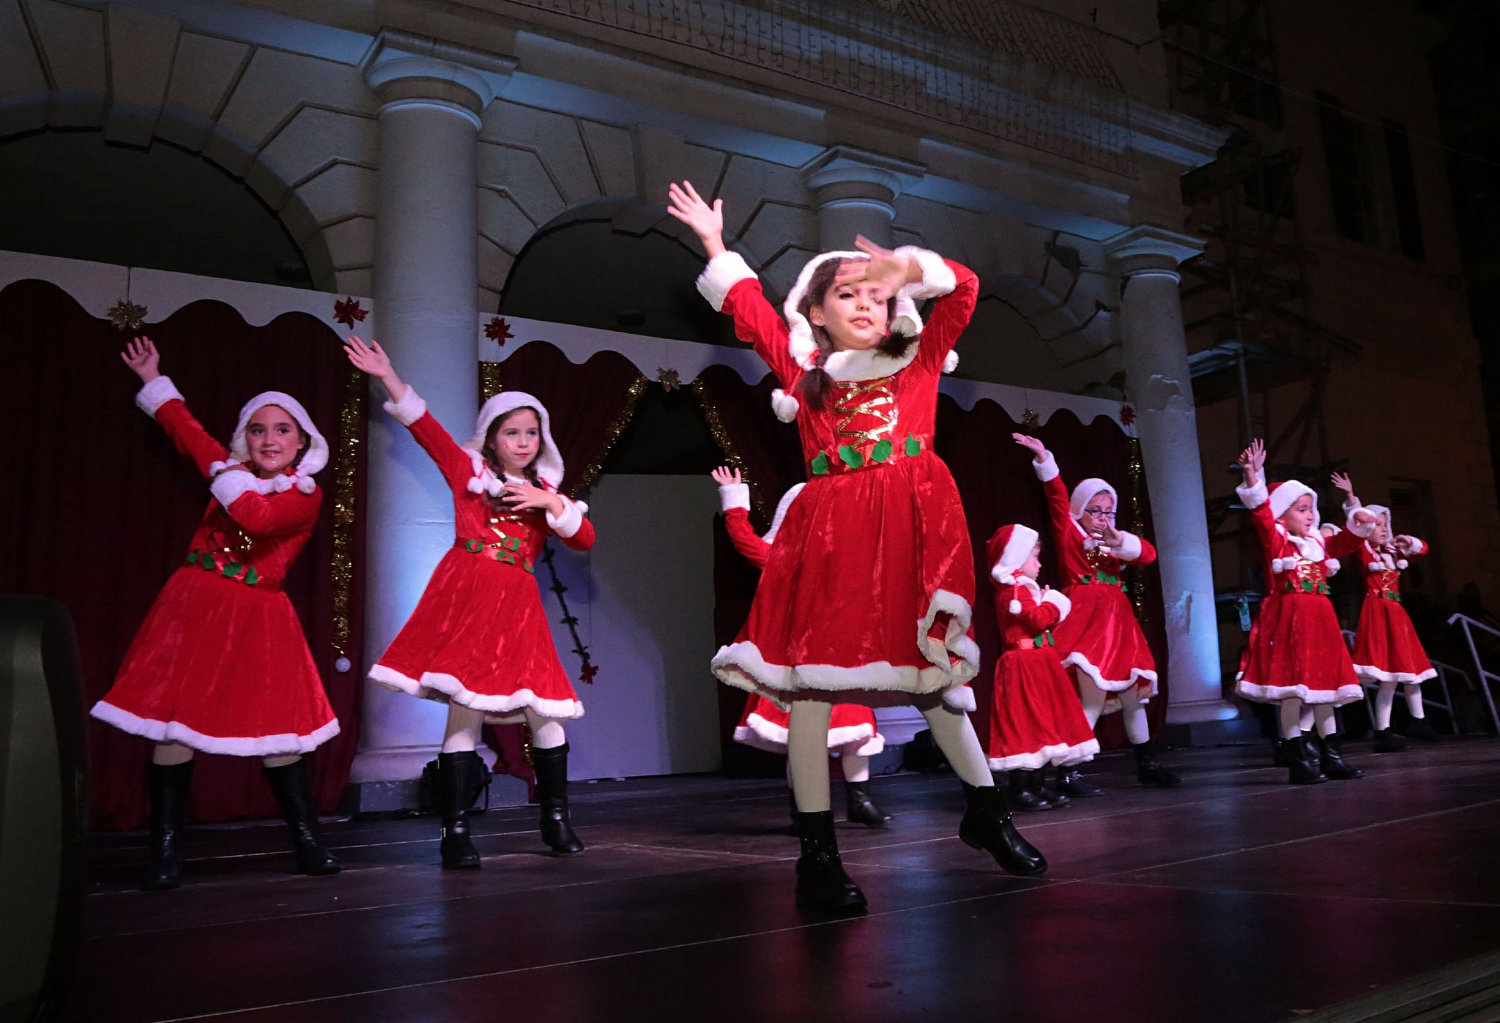 The Christmas Lights Festival is a magical family show